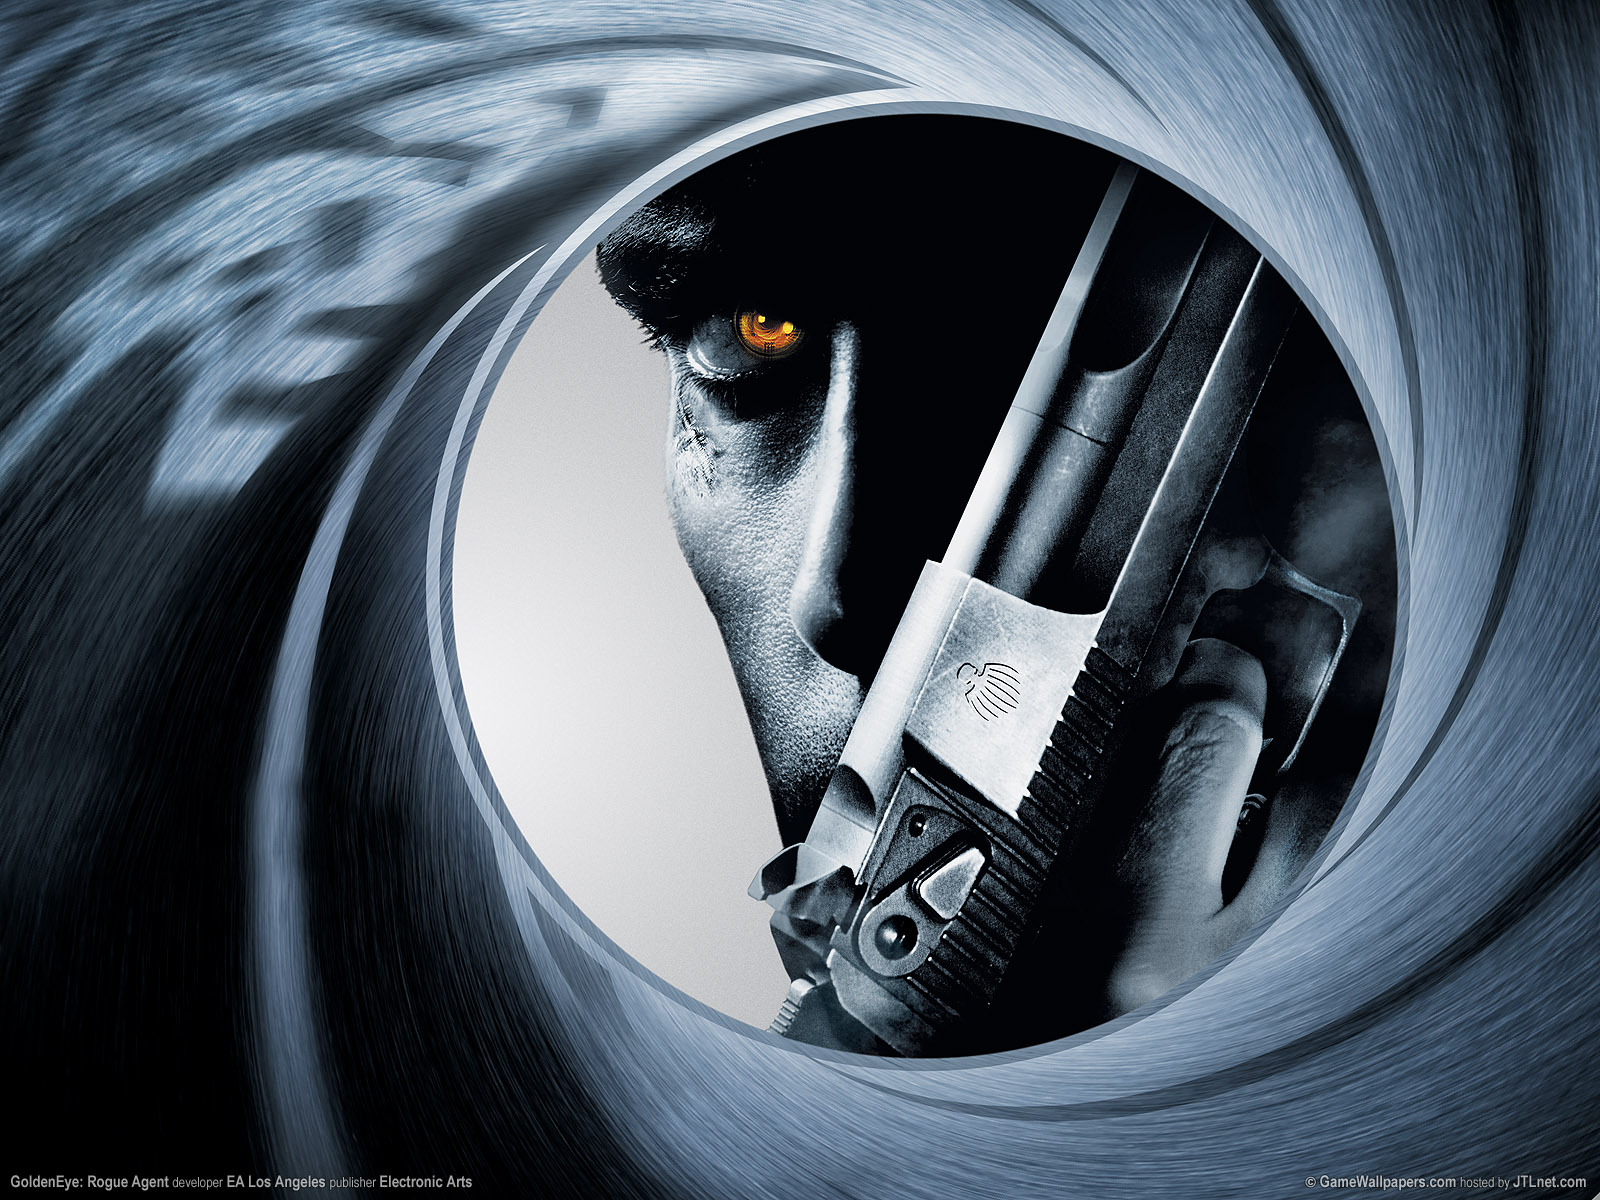 Devil 3d Hd Wallpapers Goldeneye Rogue Agent Wallpapers Goldeneye Rogue Agent